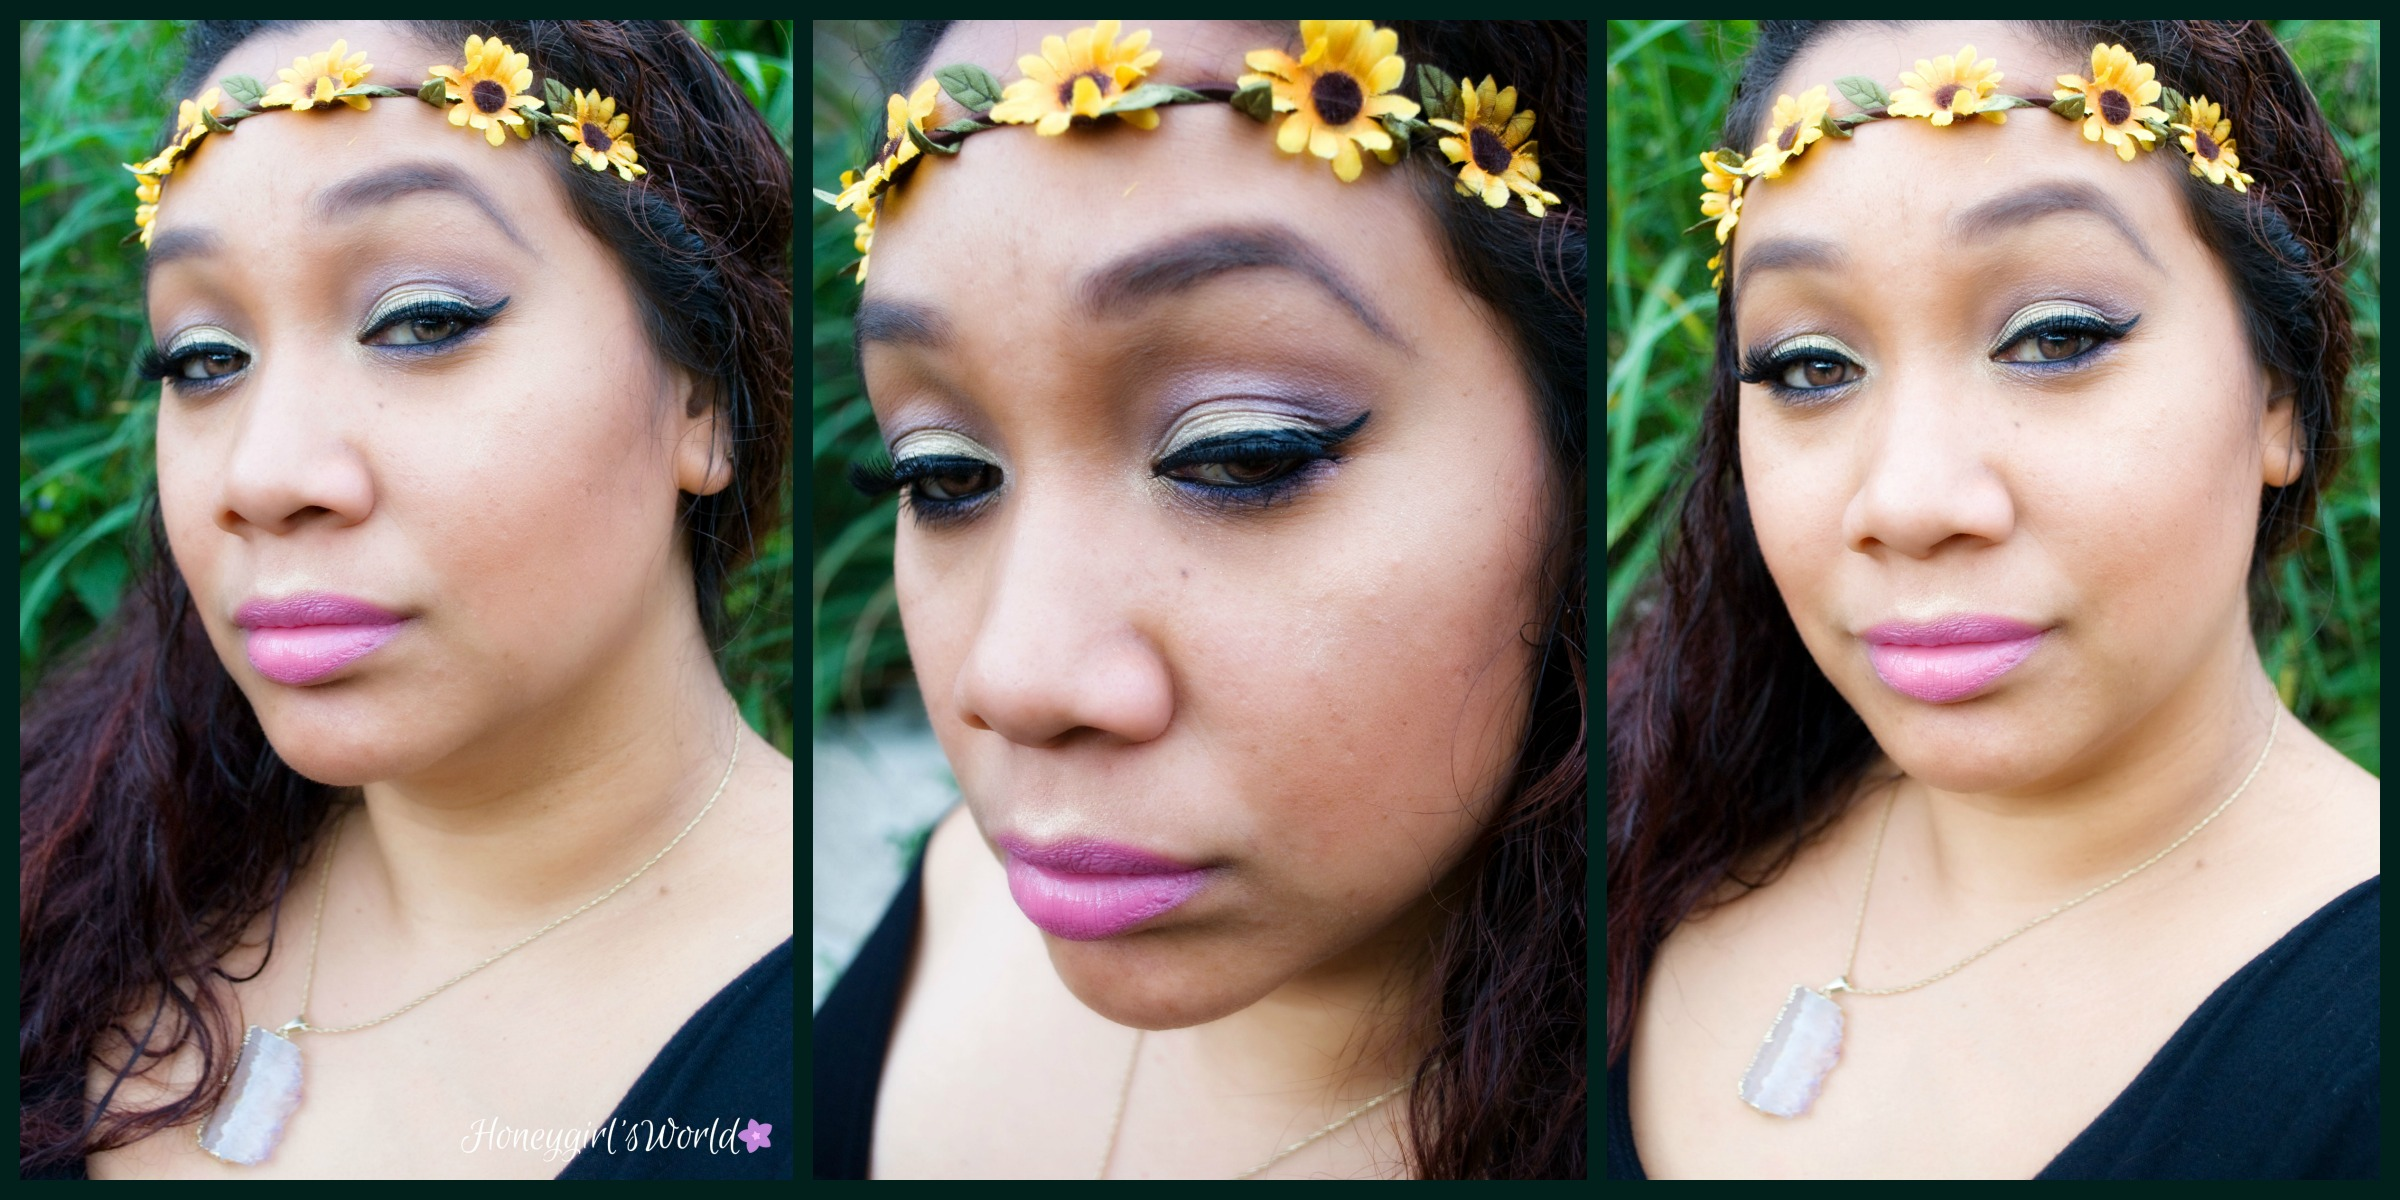 The Secret Garden - Ipsy Glam Challenge Look